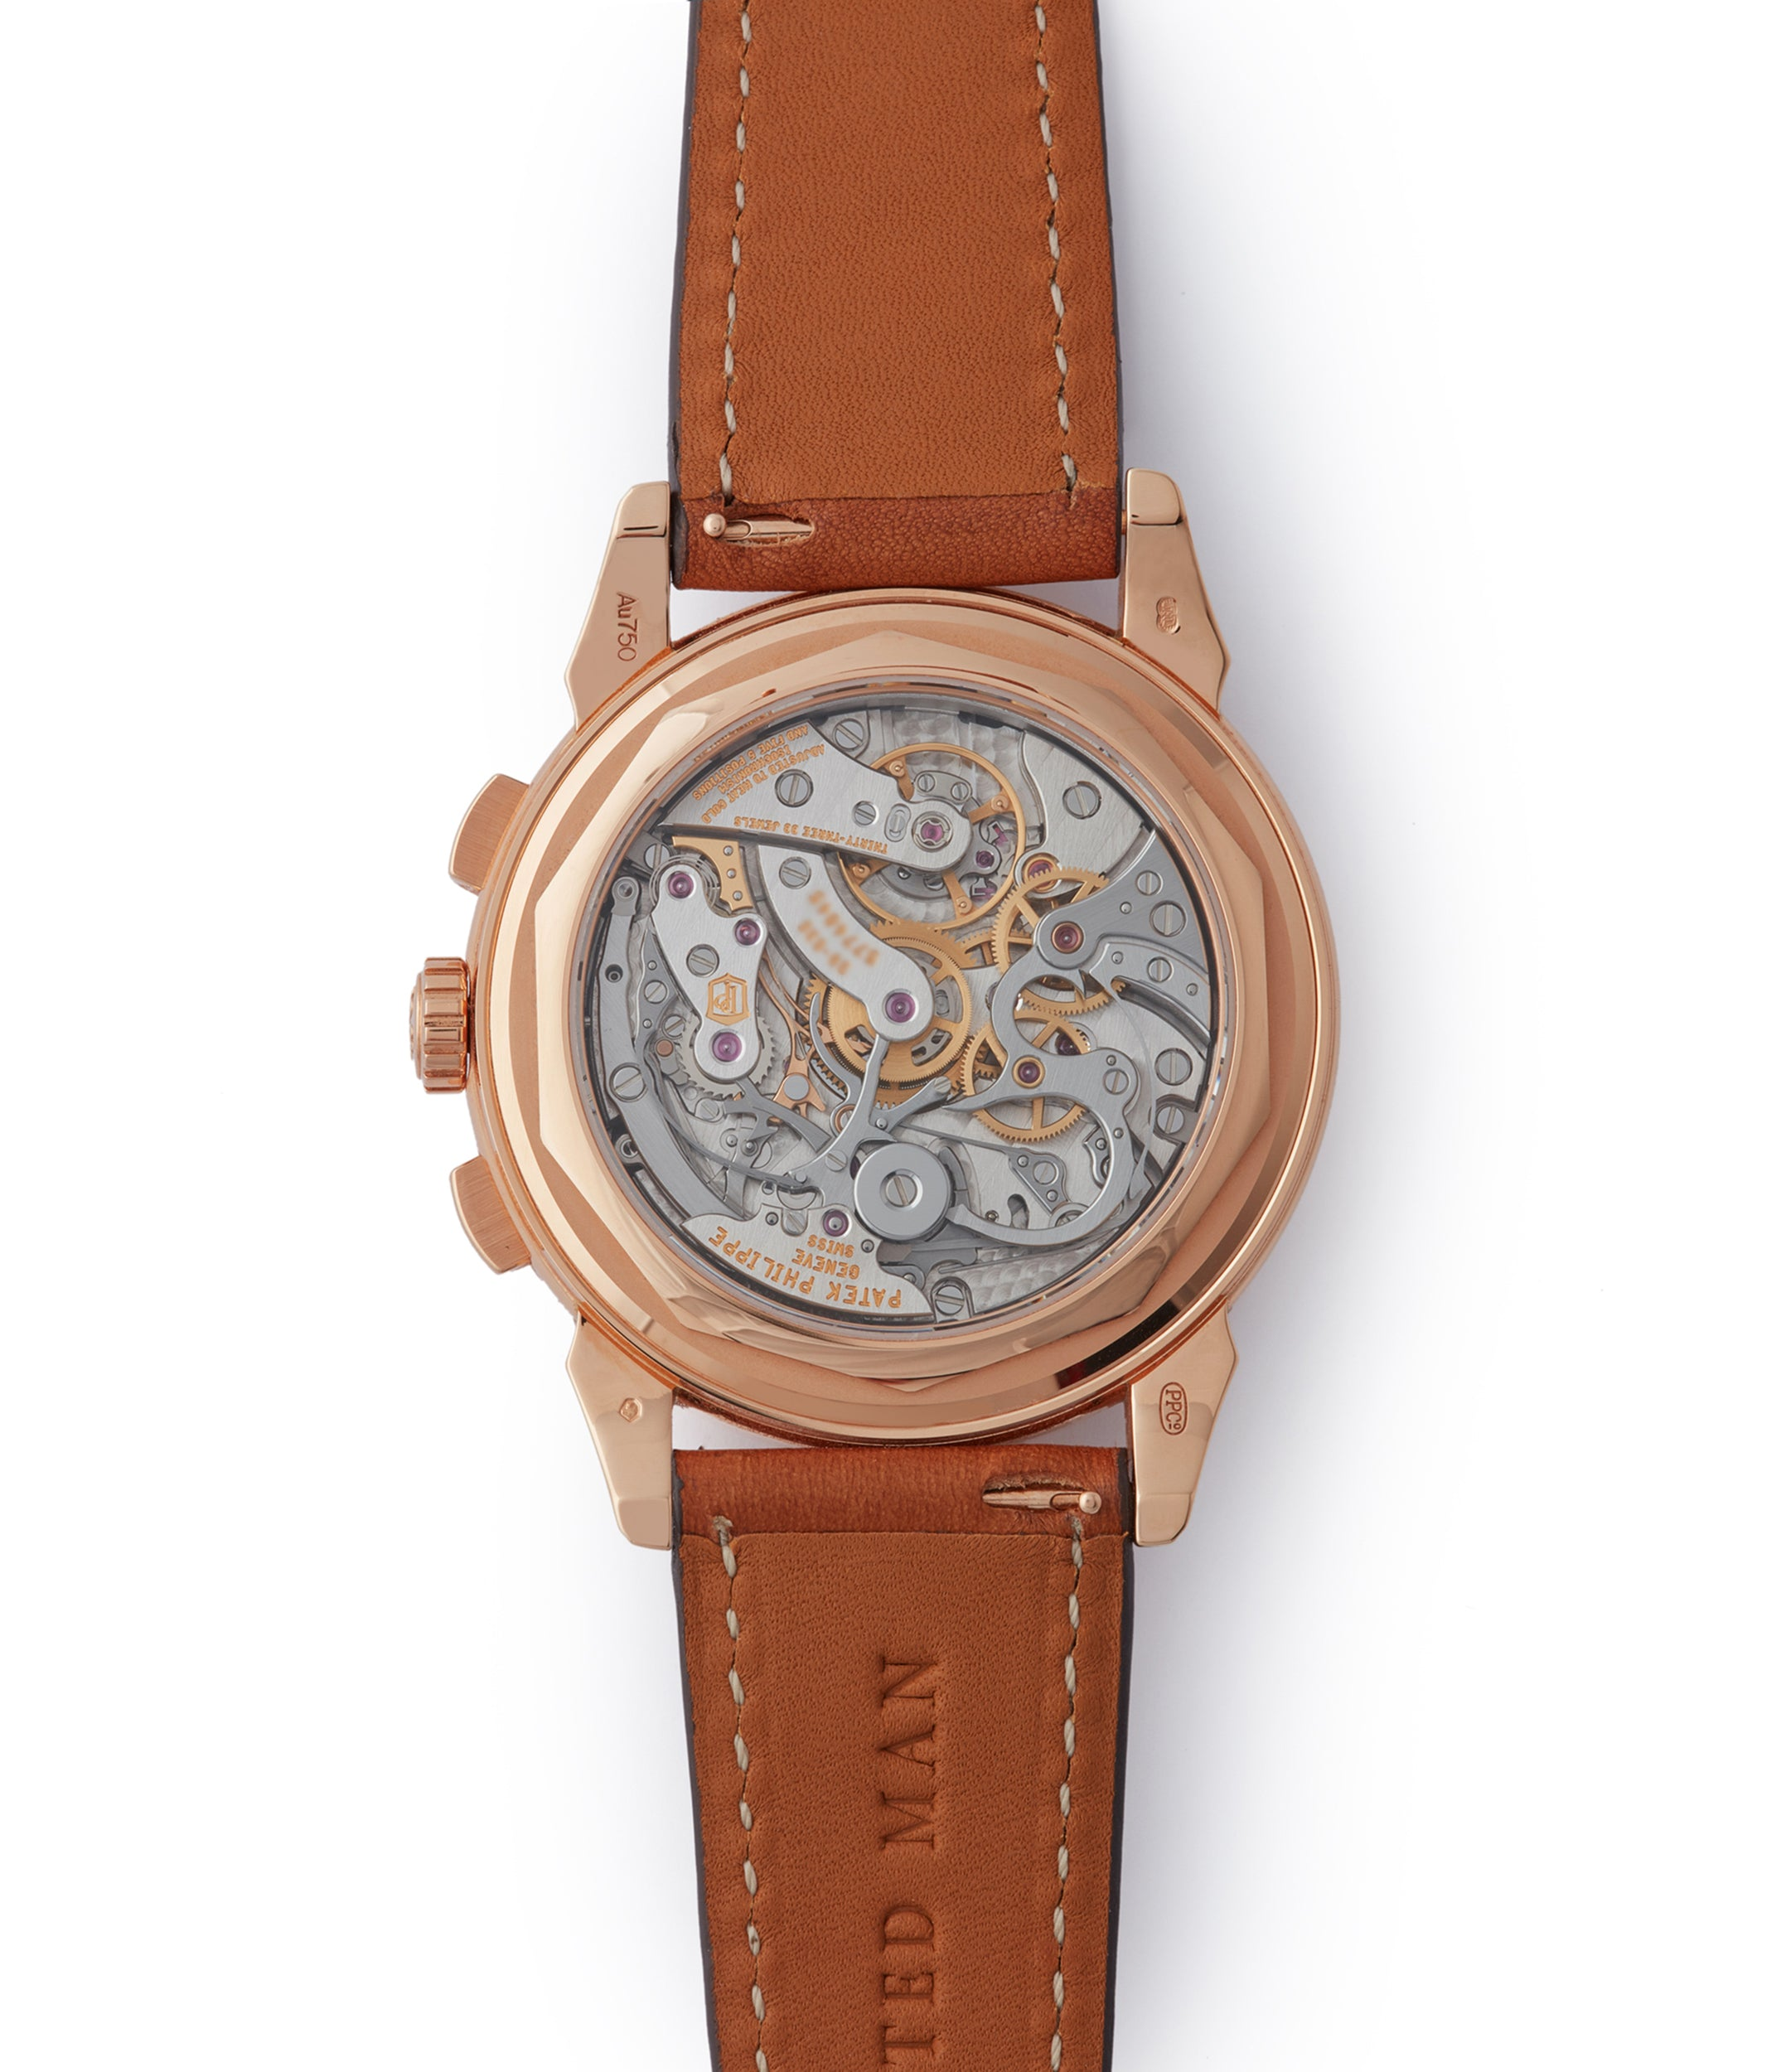 manual-winding 29-535 PS Patek Philippe 5270R Grand Complications Perpetual Calendar Chronograph rose gold dress watch for sale online at A Collected Man London UK specialist of rare watches